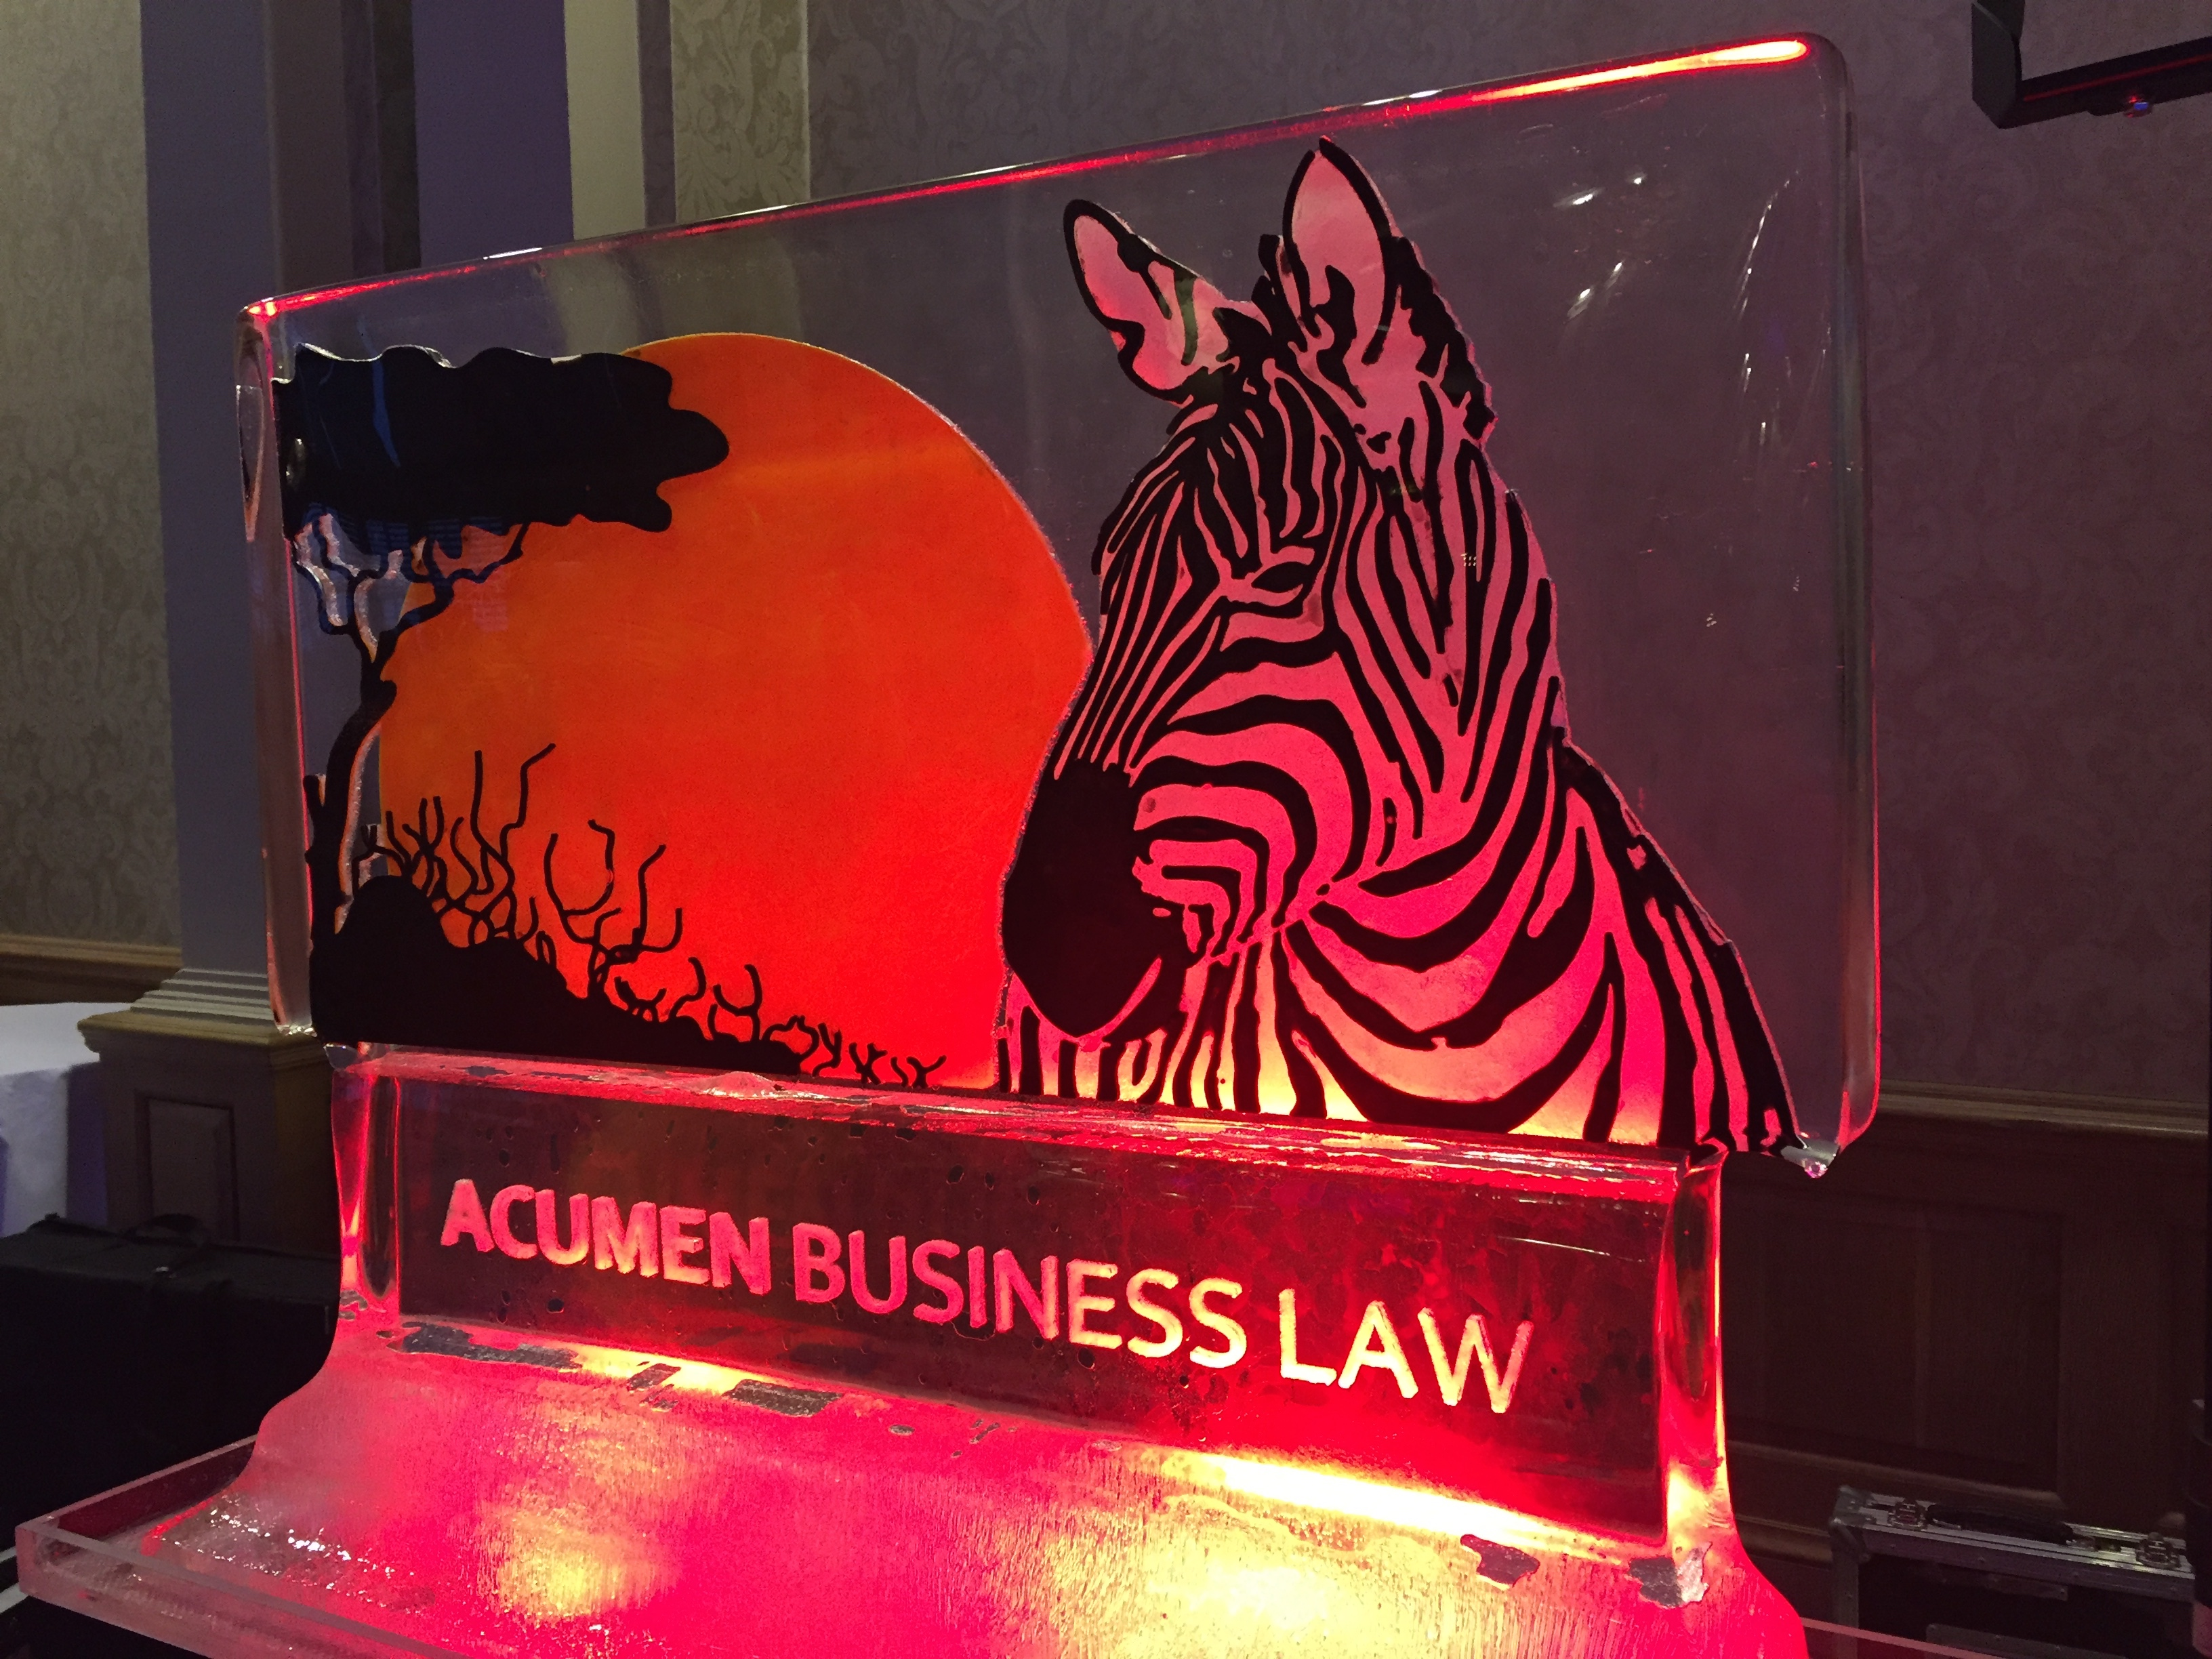 Acumen Business Law PSD Ice Art Ice Sculpture